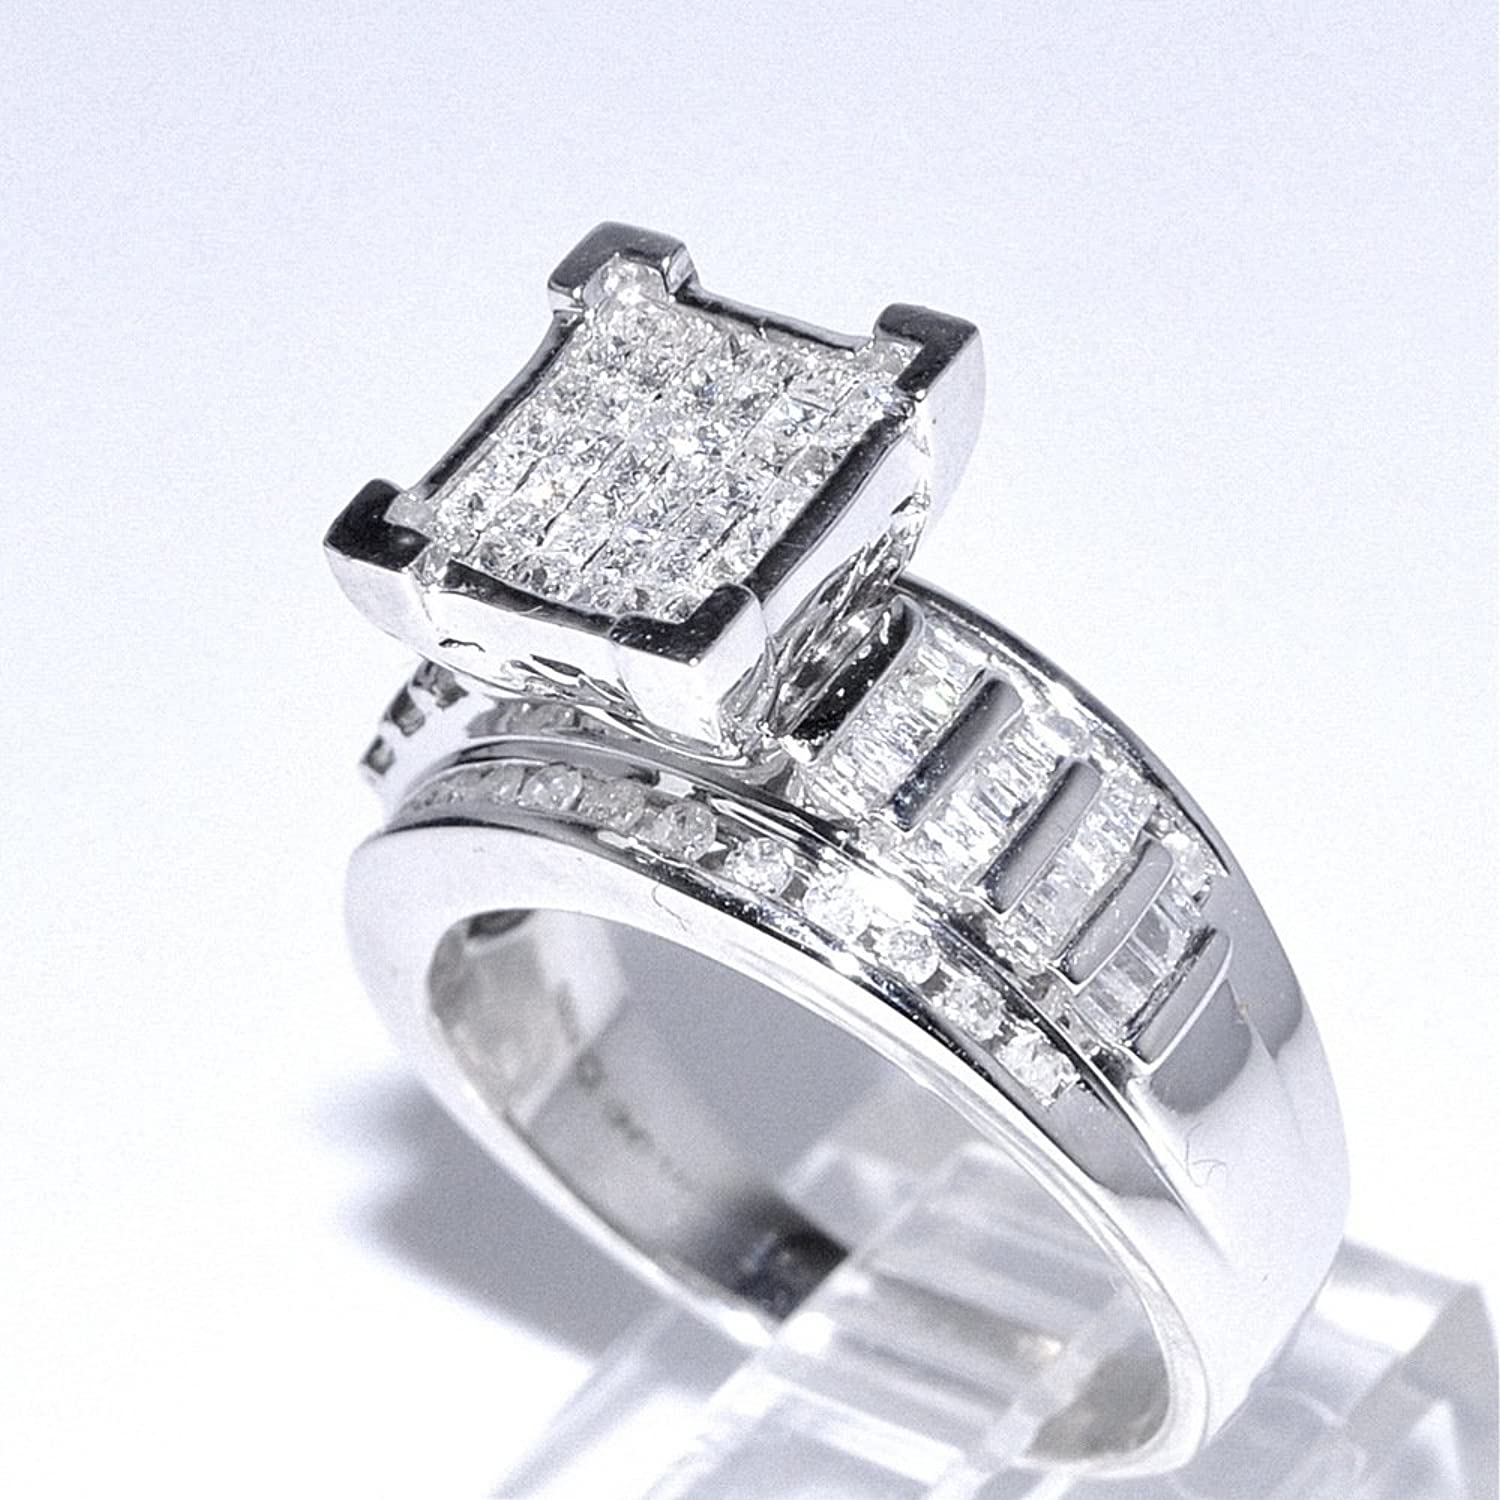 rings size jewellery cz ring engagement silver sterling stone carat